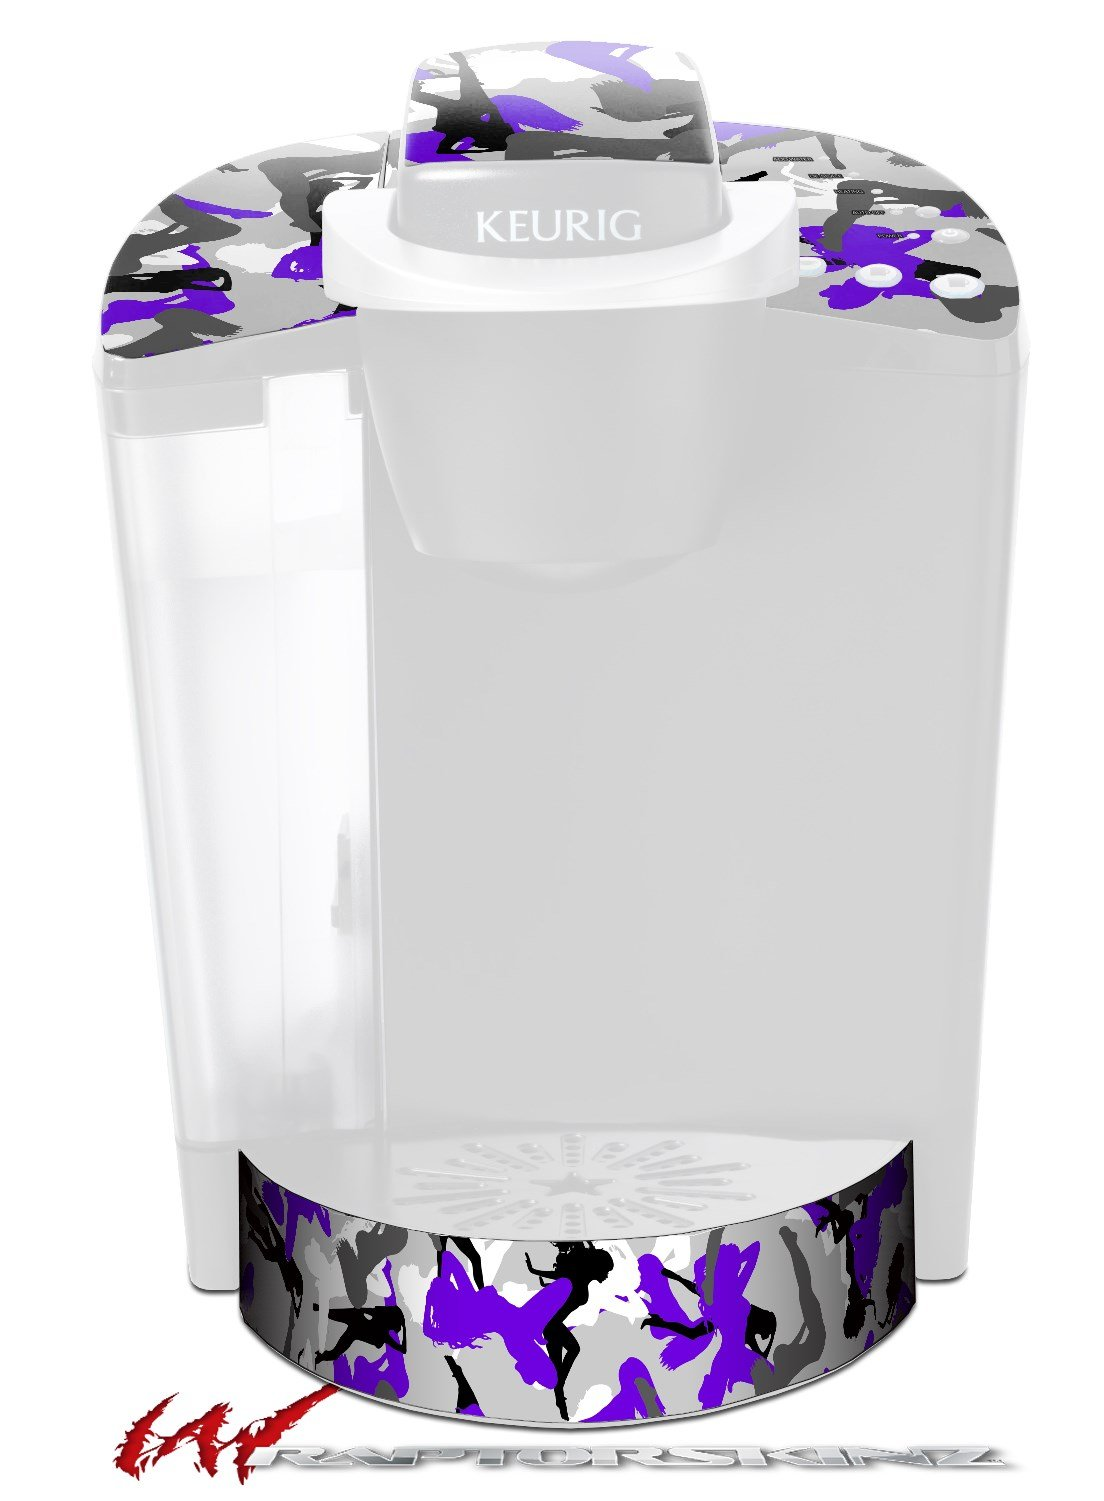 Sexy Girl Silhouette Camo Purple - Decal Style Vinyl Skin fits Keurig K40 Elite Coffee Makers (KEURIG NOT INCLUDED)